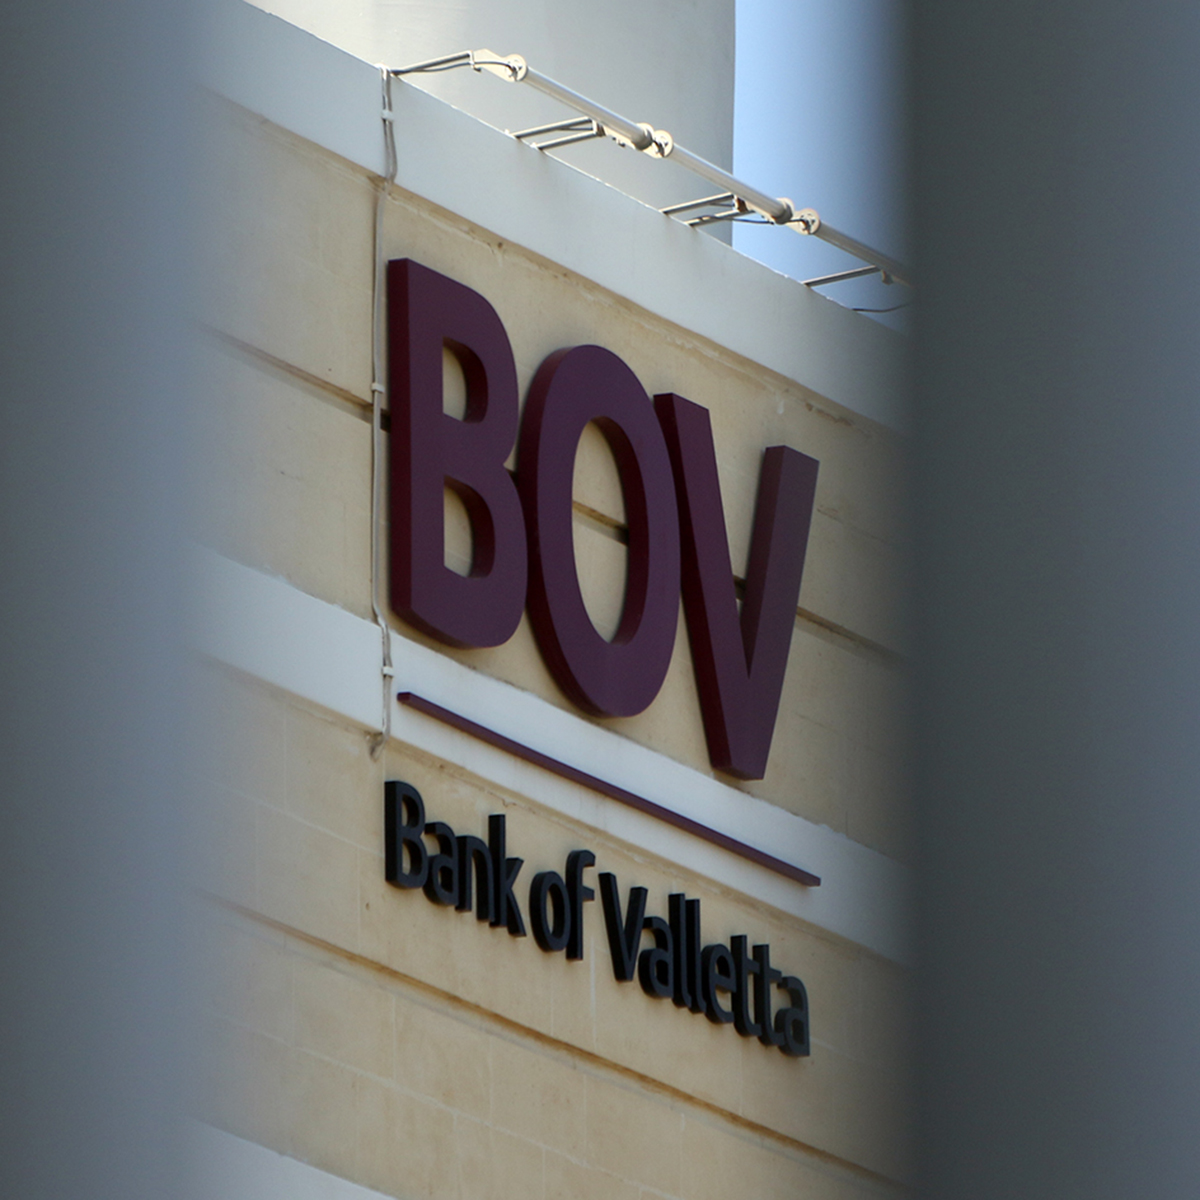 Bank of Valletta to assist International Clients through Extensive Branch Network